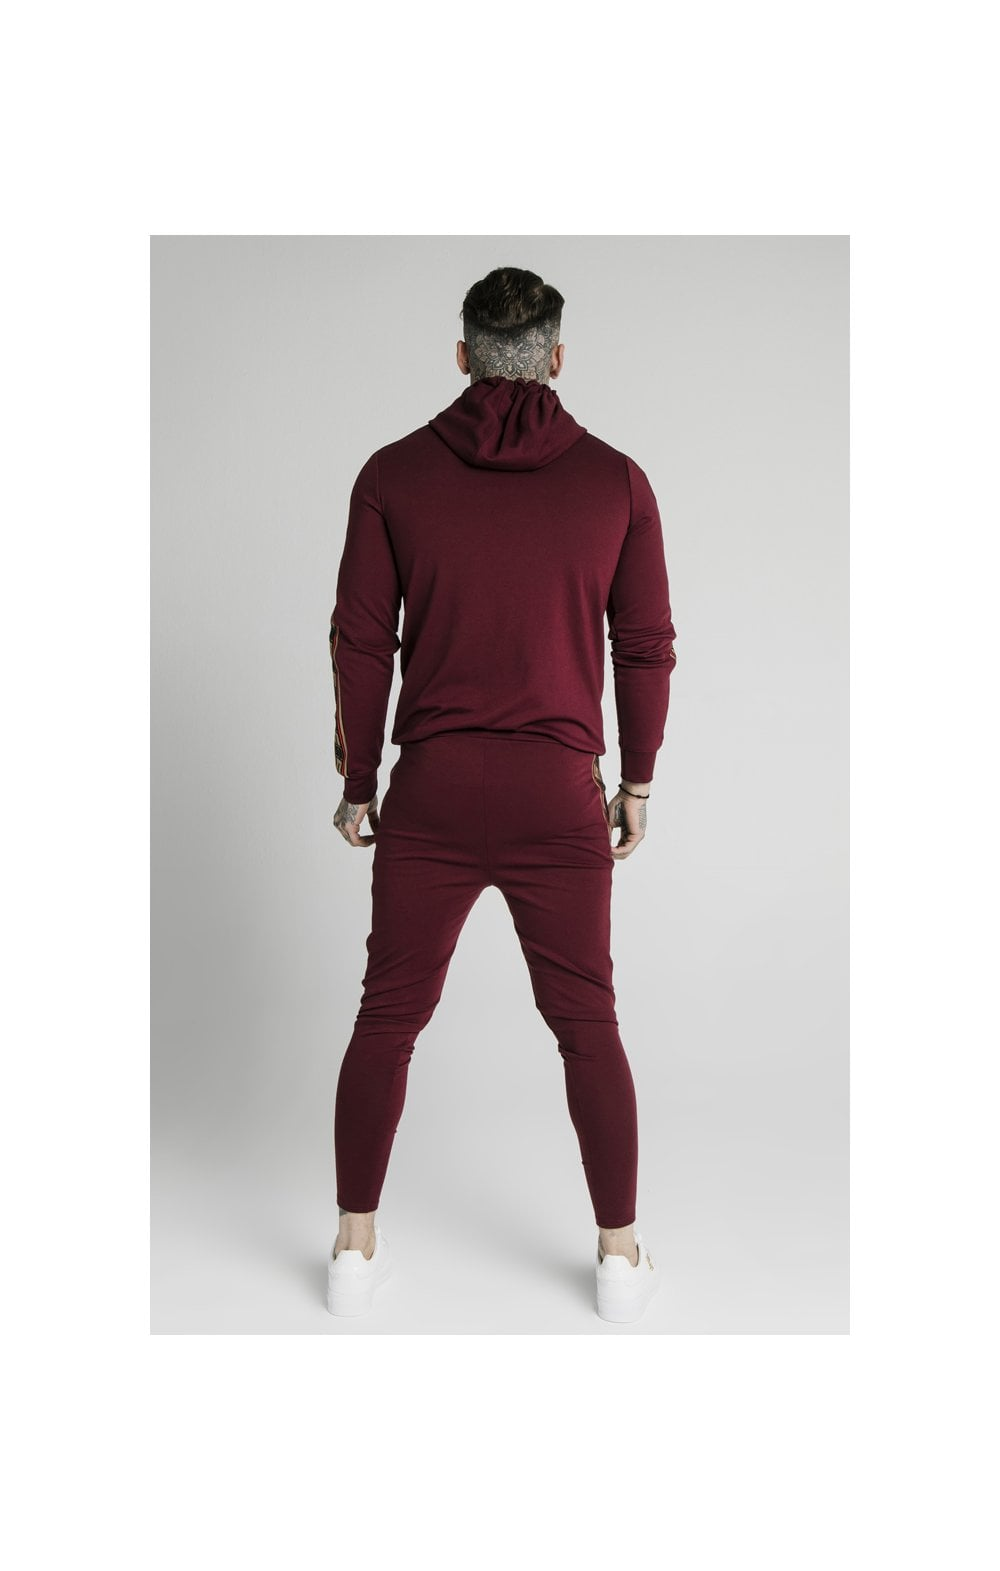 Load image into Gallery viewer, SikSilk Jacquard Retro Overhead Hoodie - Burgundy (6)